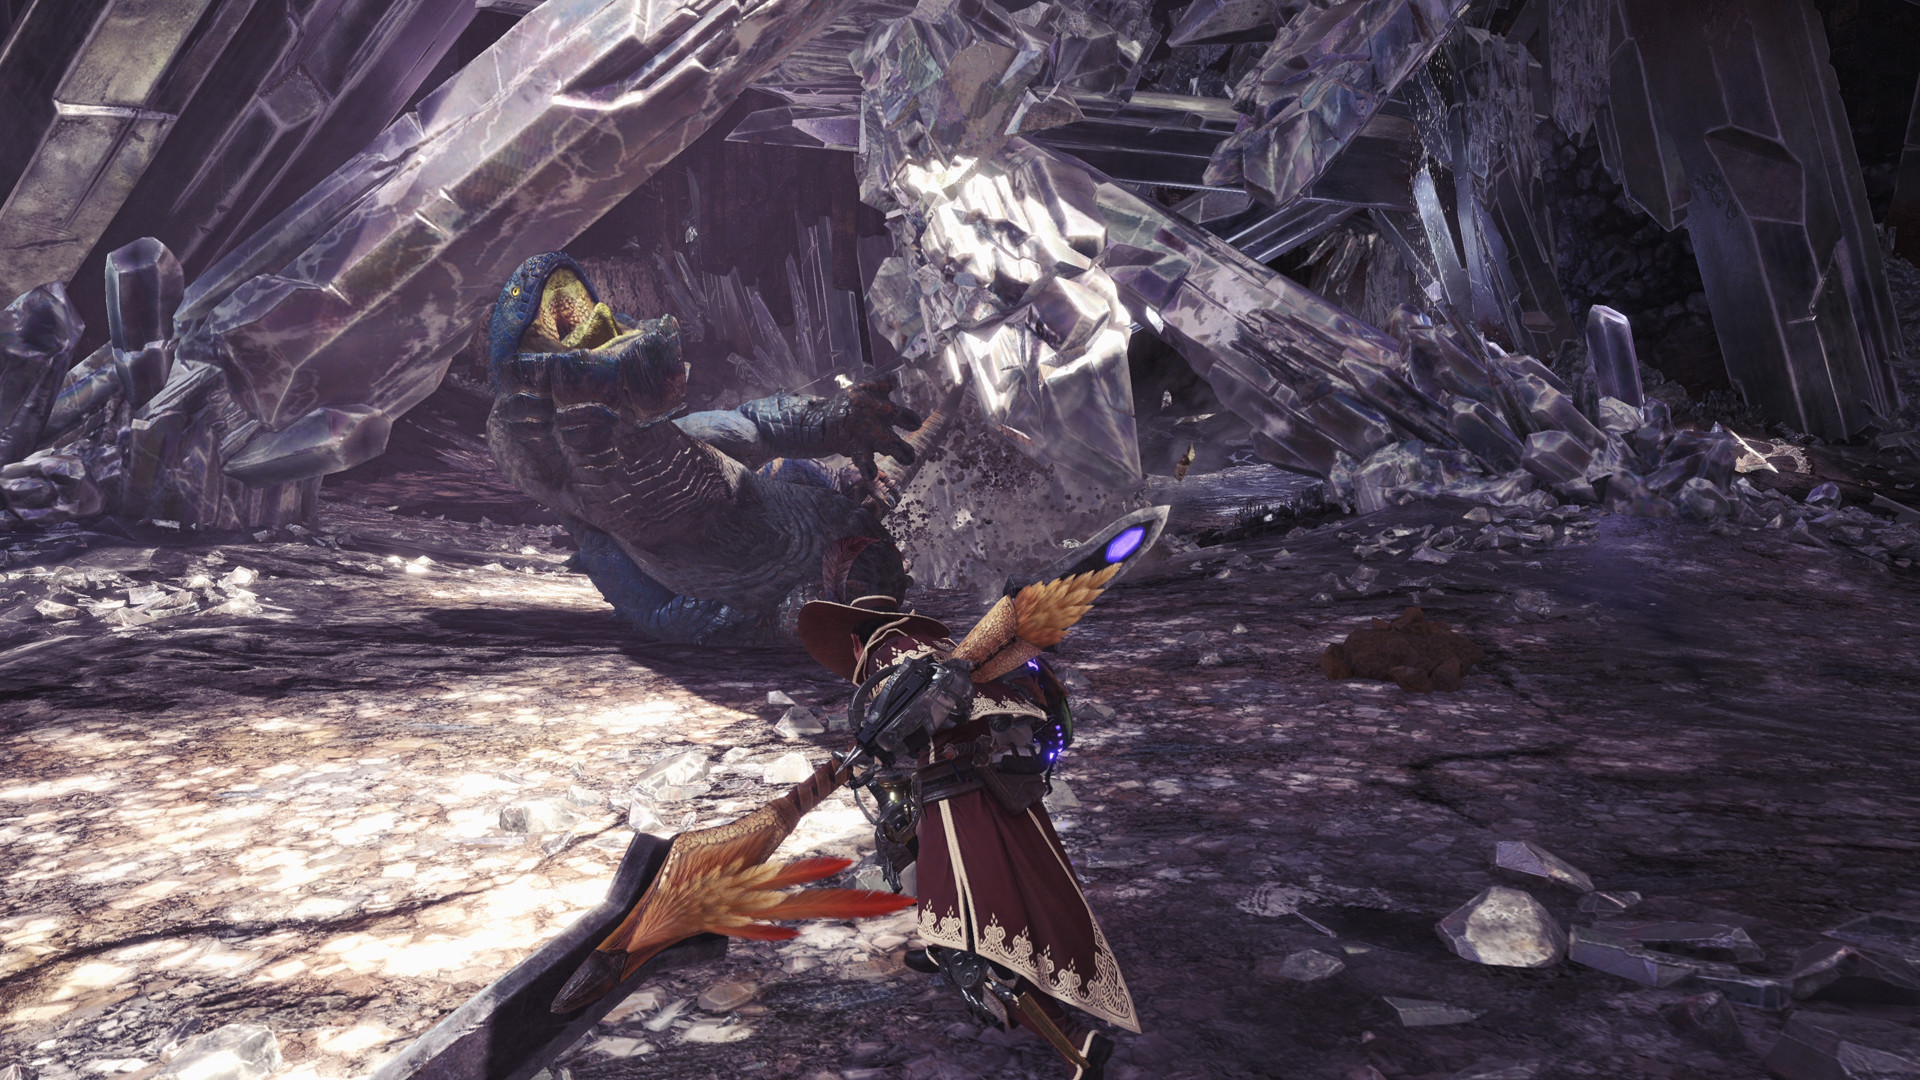 Monster Hunter: World, Steam, PlayStation 4, Game, , PC game, Capcom, Role-playing game, Video game, Action role-playing game, Monster Hunter: World, screenshot, geological phenomenon, pc game, formation